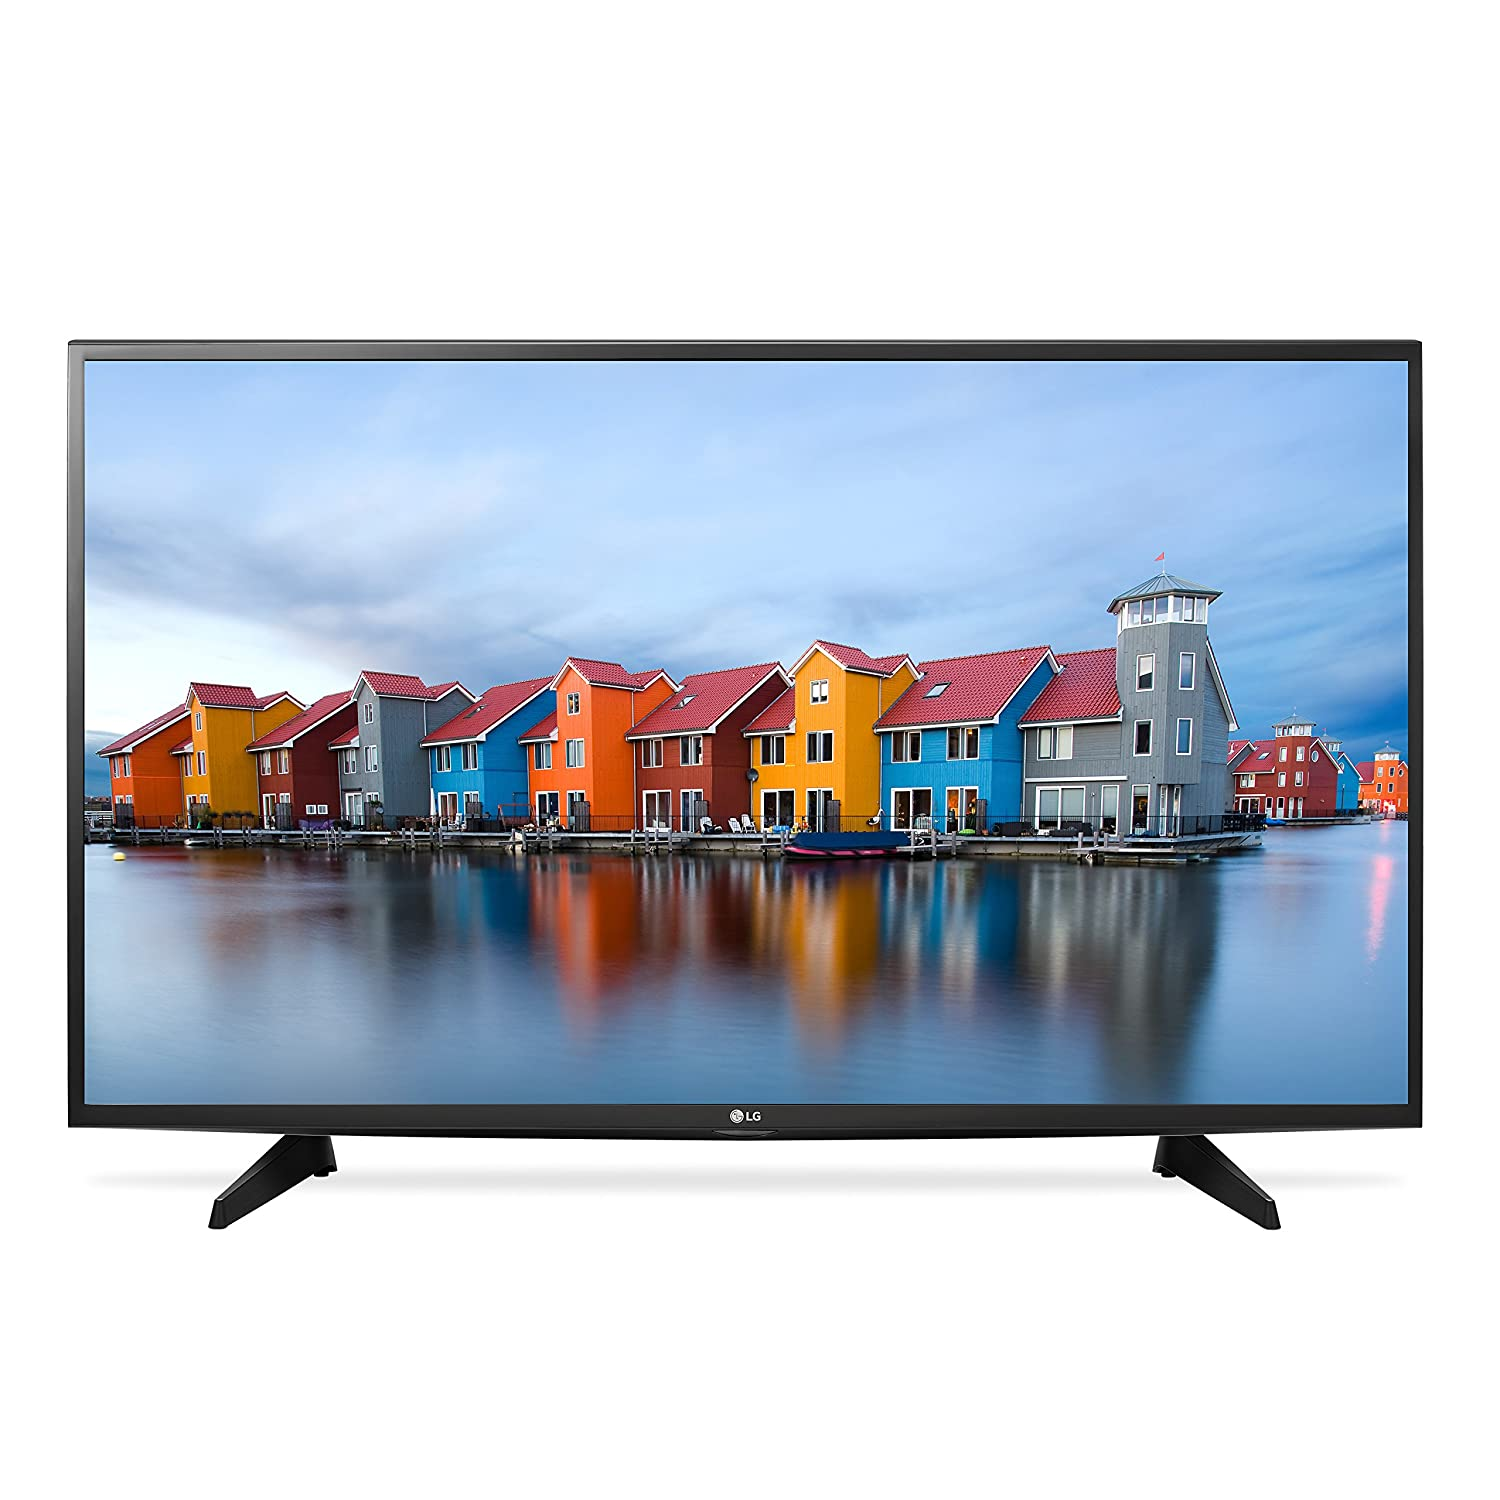 LG Electronics 43LH5700 43-Inch 1080p Smart LED TV (2016 Model)